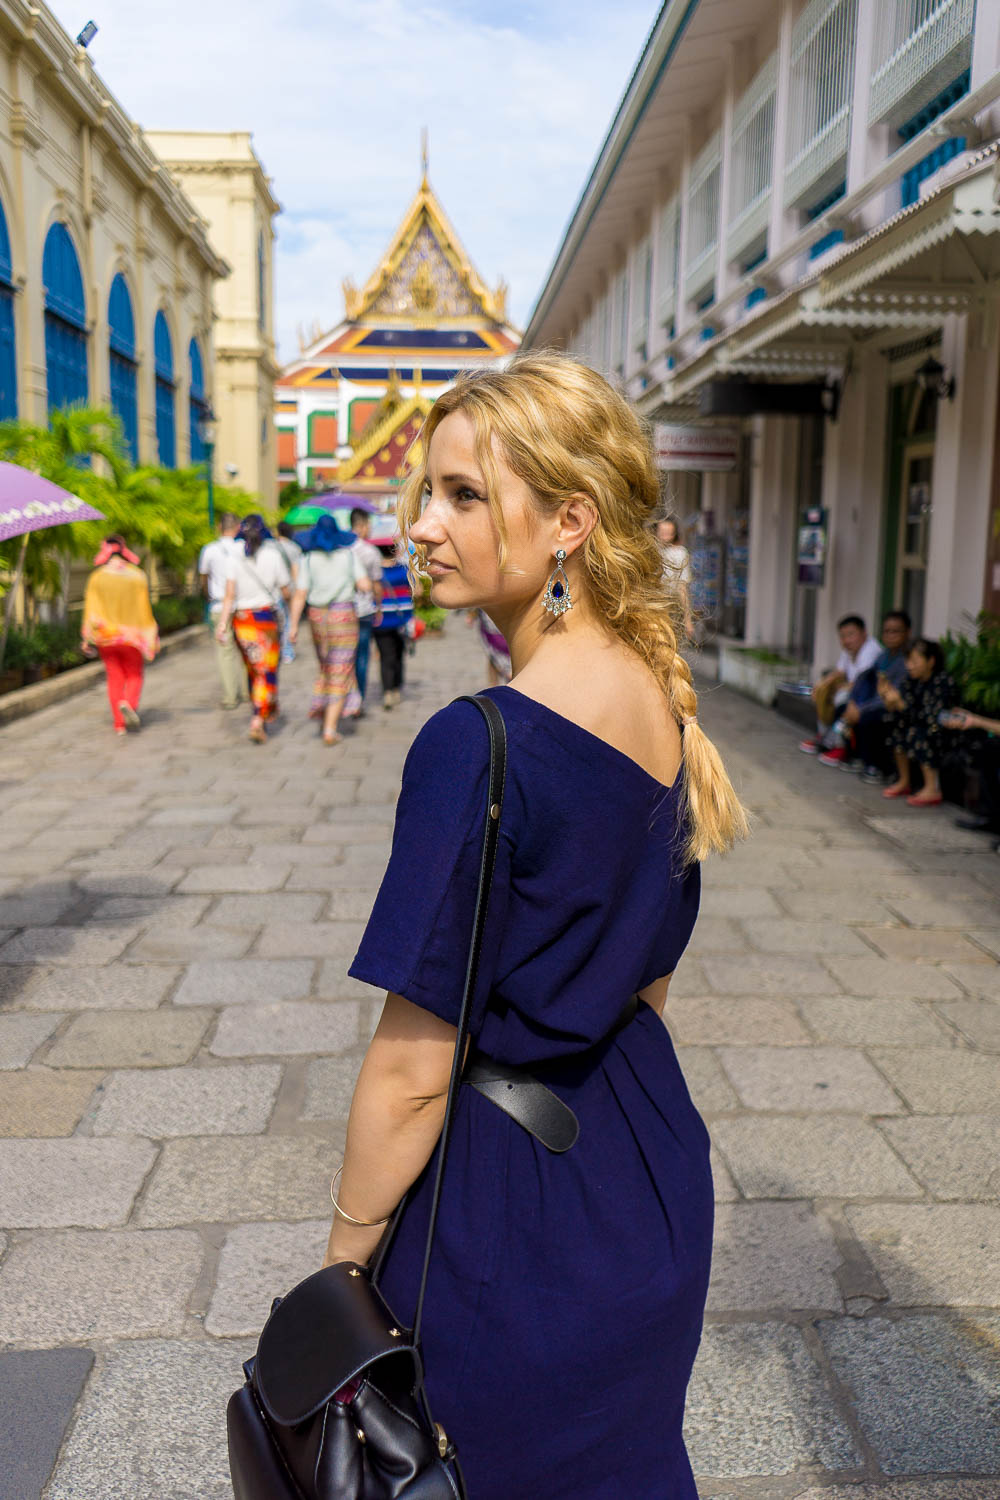 golden city in Thailand, Bangkok, blonde girl style